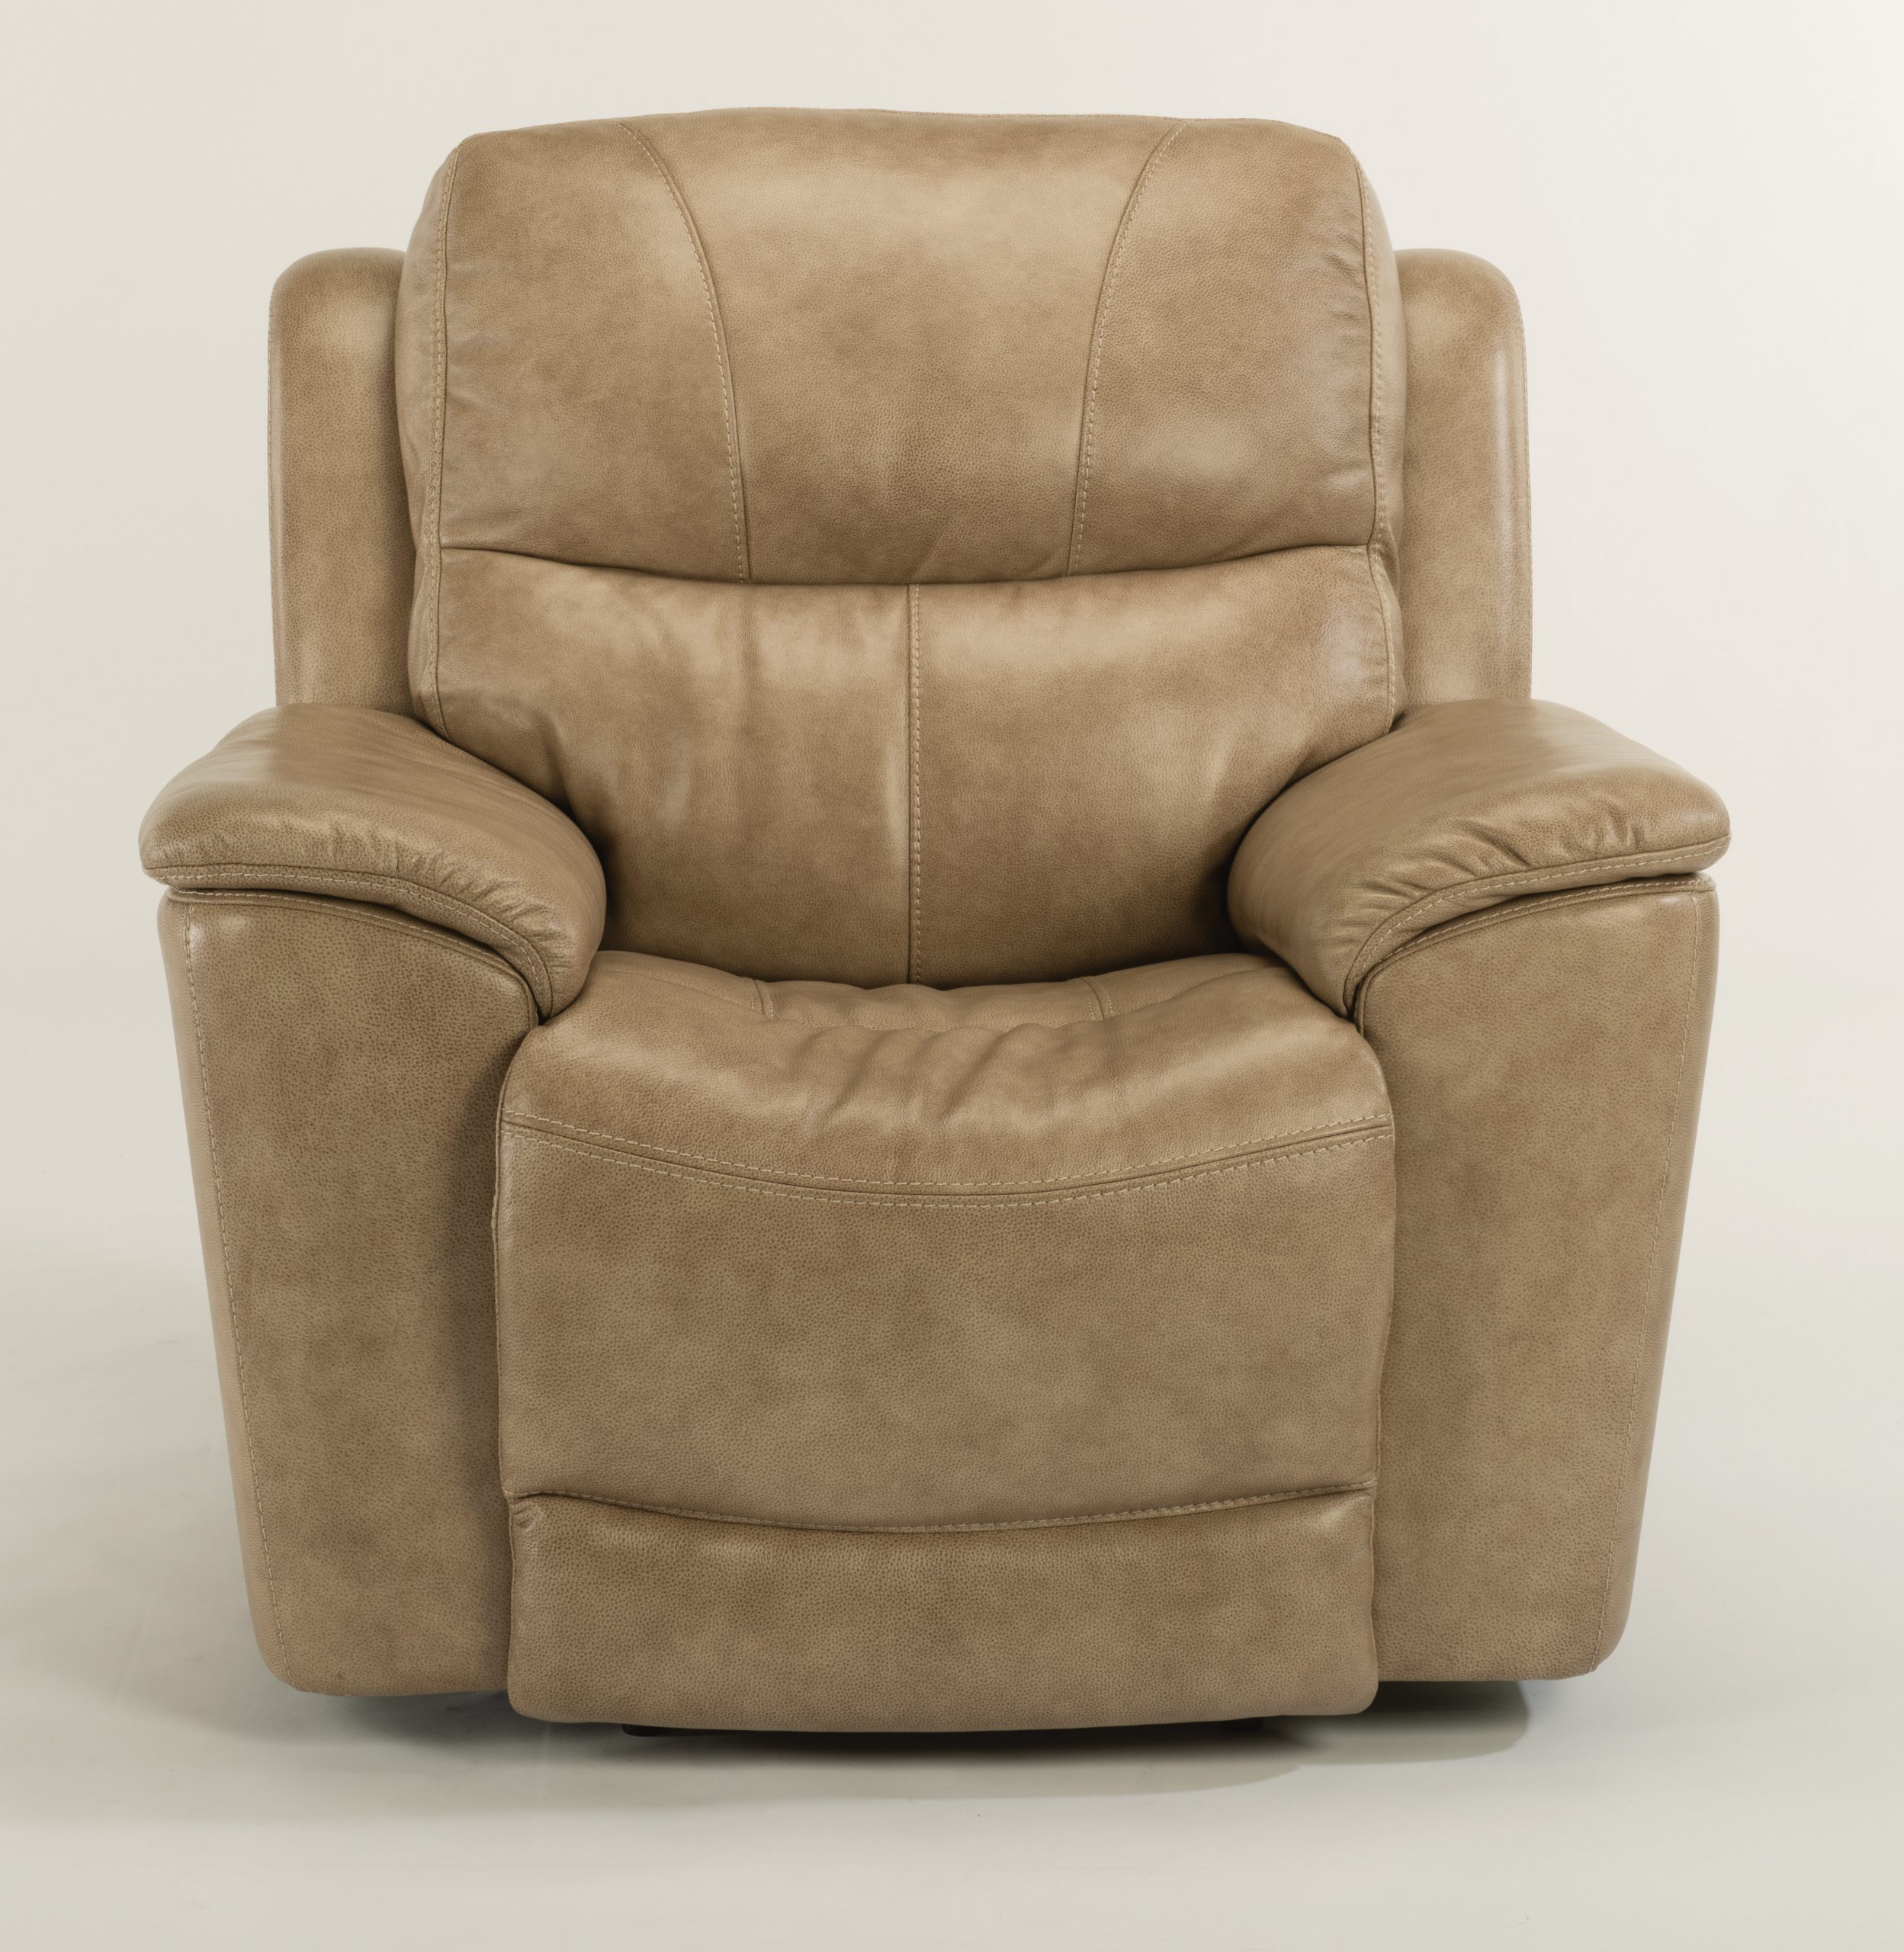 Flexsteel Cade Leather Power Recliner with Headrest and Lumbar (Recliners)